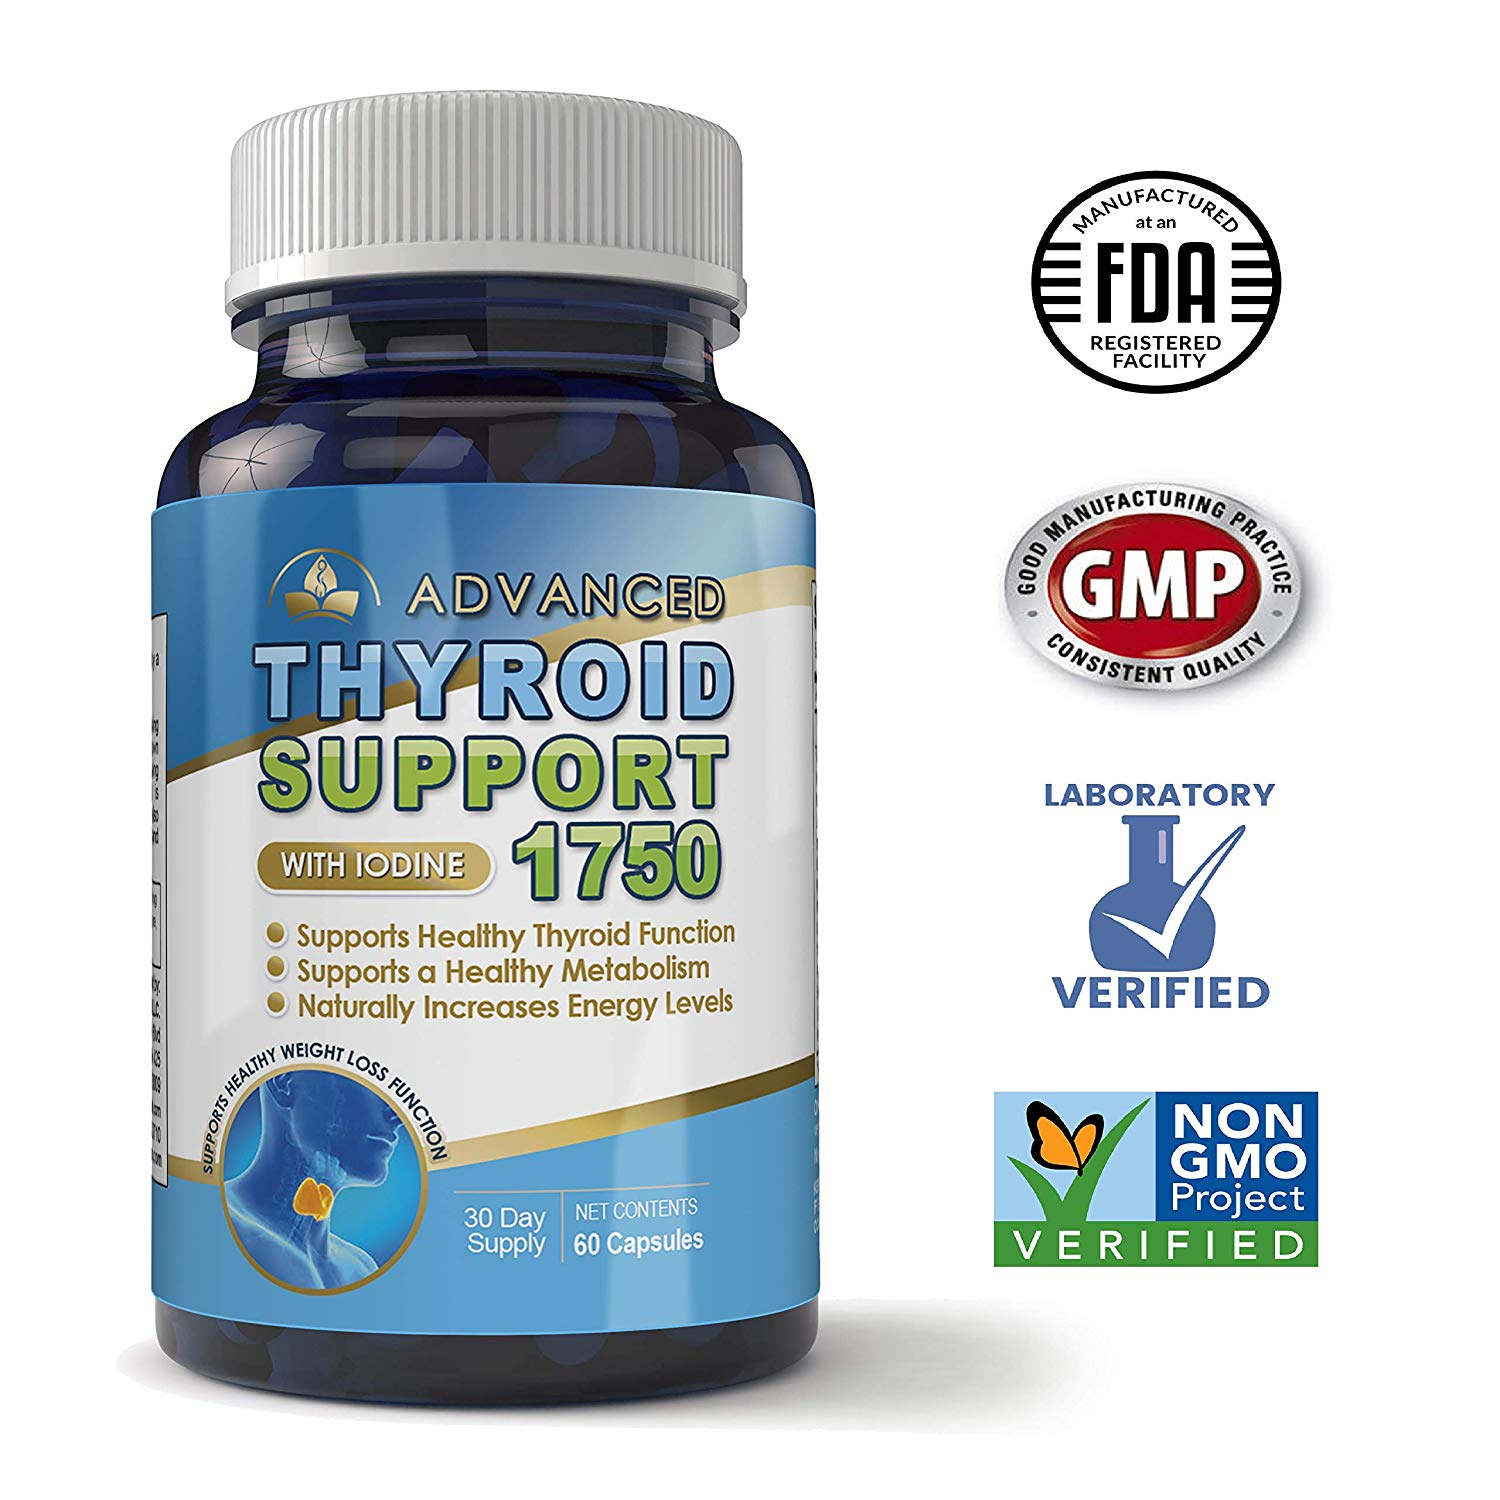 Advanced Thyroid Support Complex with Iodine 1750 mg - Helps Support Healthy Weight Loss, Metabolism, Energy Levels - 60 Capsules - Includes Bonus Diet eBook